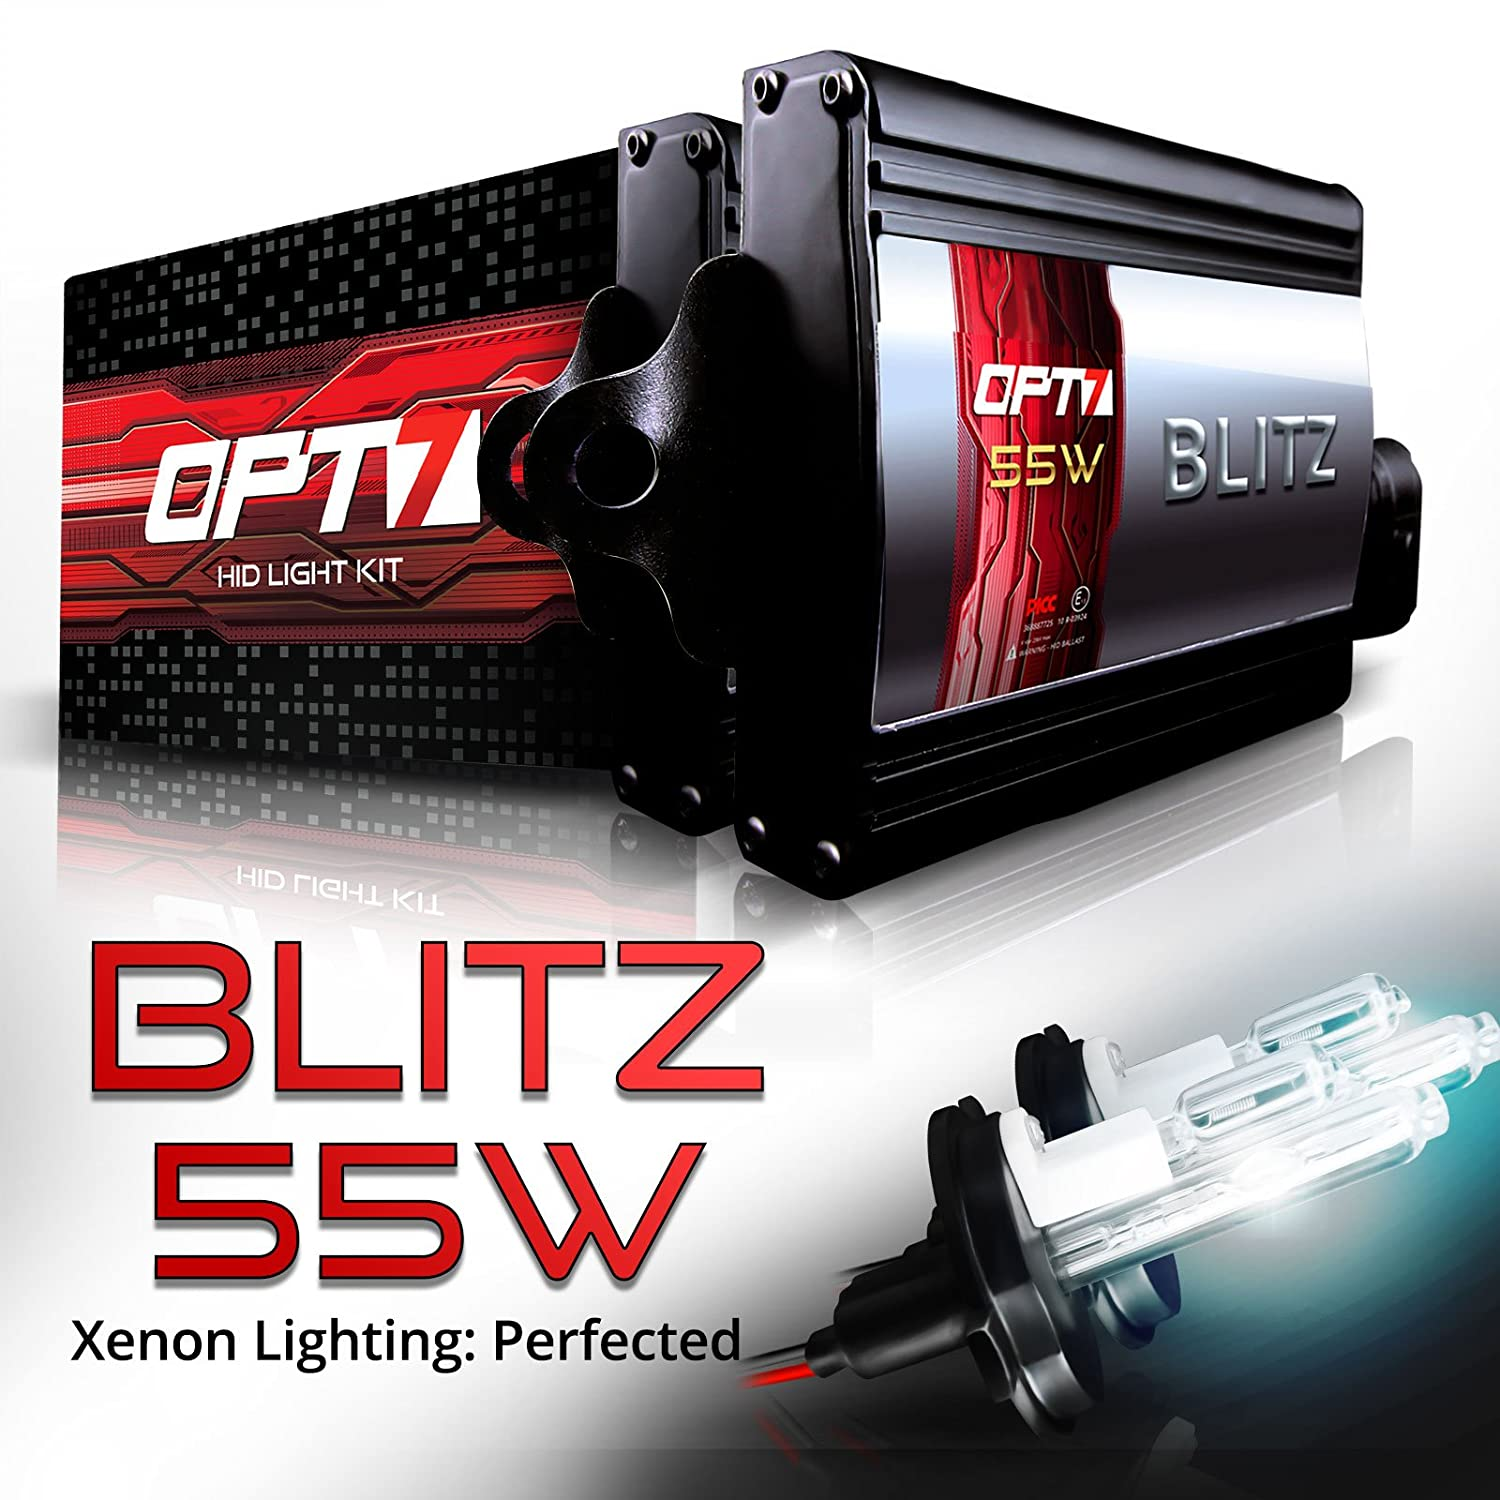 5000K Bright White Xenon Light OPT7 BLTZ 55W H4 9003 Hi-Lo HID Kit 2 Yr Warranty All Bulb Sizes and Colors 4X Longer Life 3X Brighter